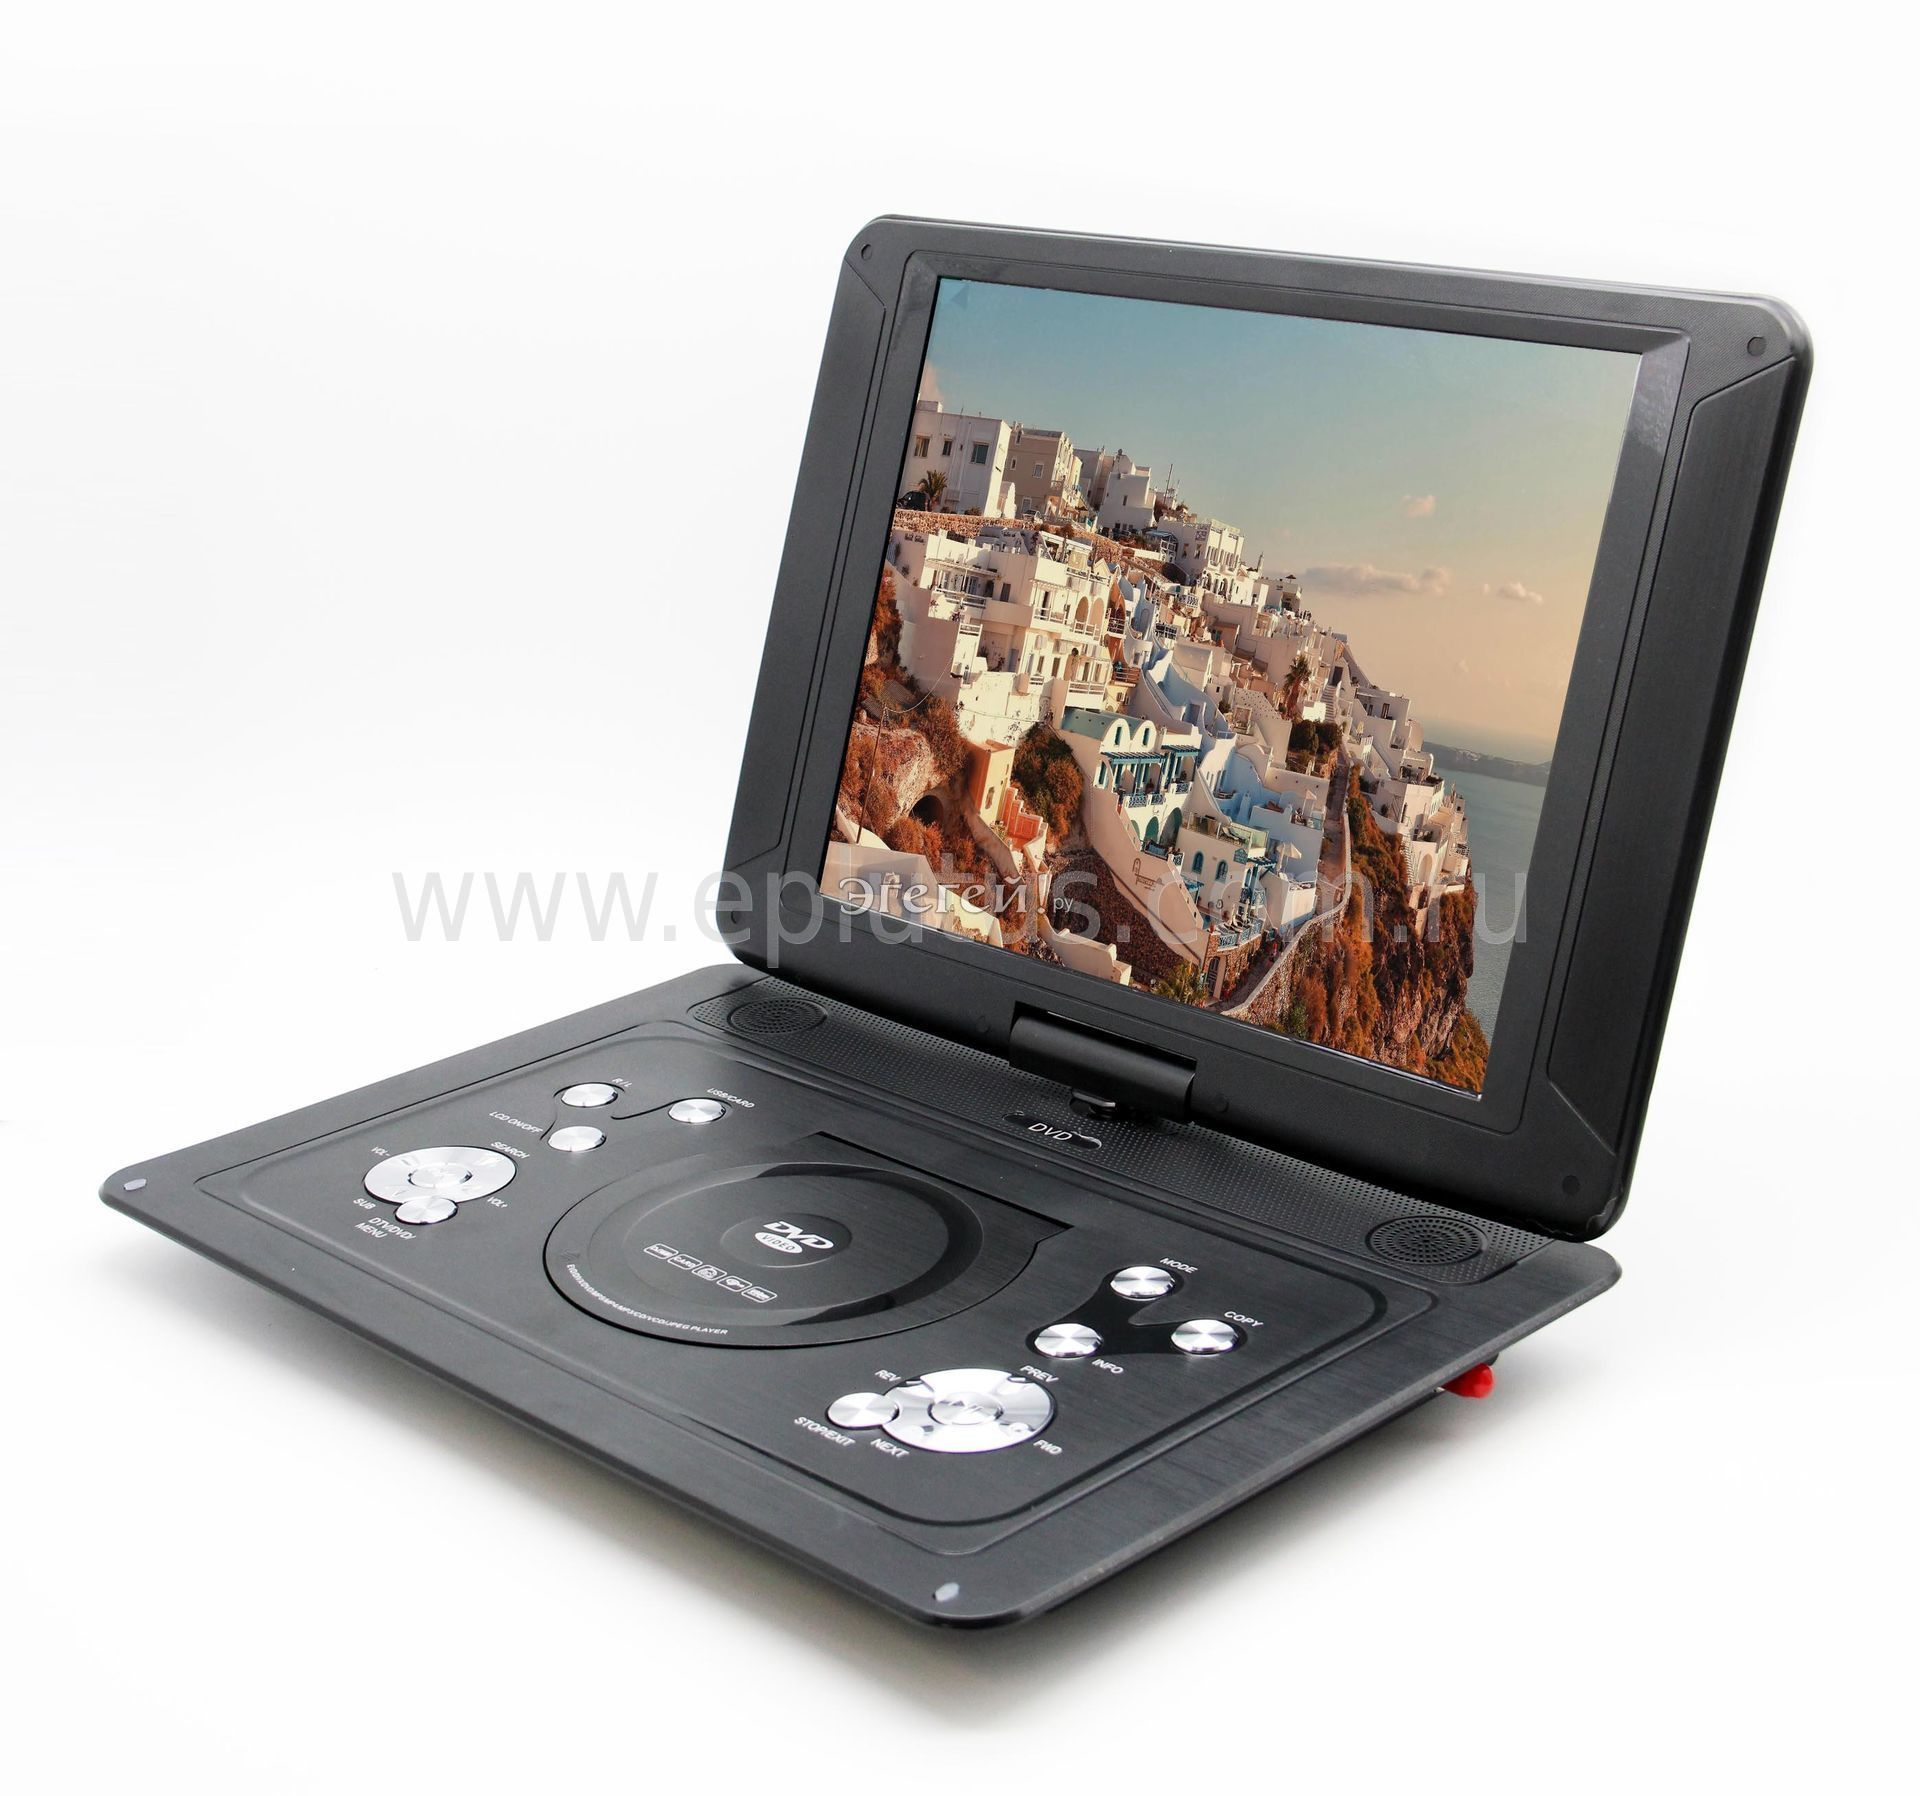 dvd player Find great deals on ebay for divx dvd player in dvd and blu-ray players shop with confidence.